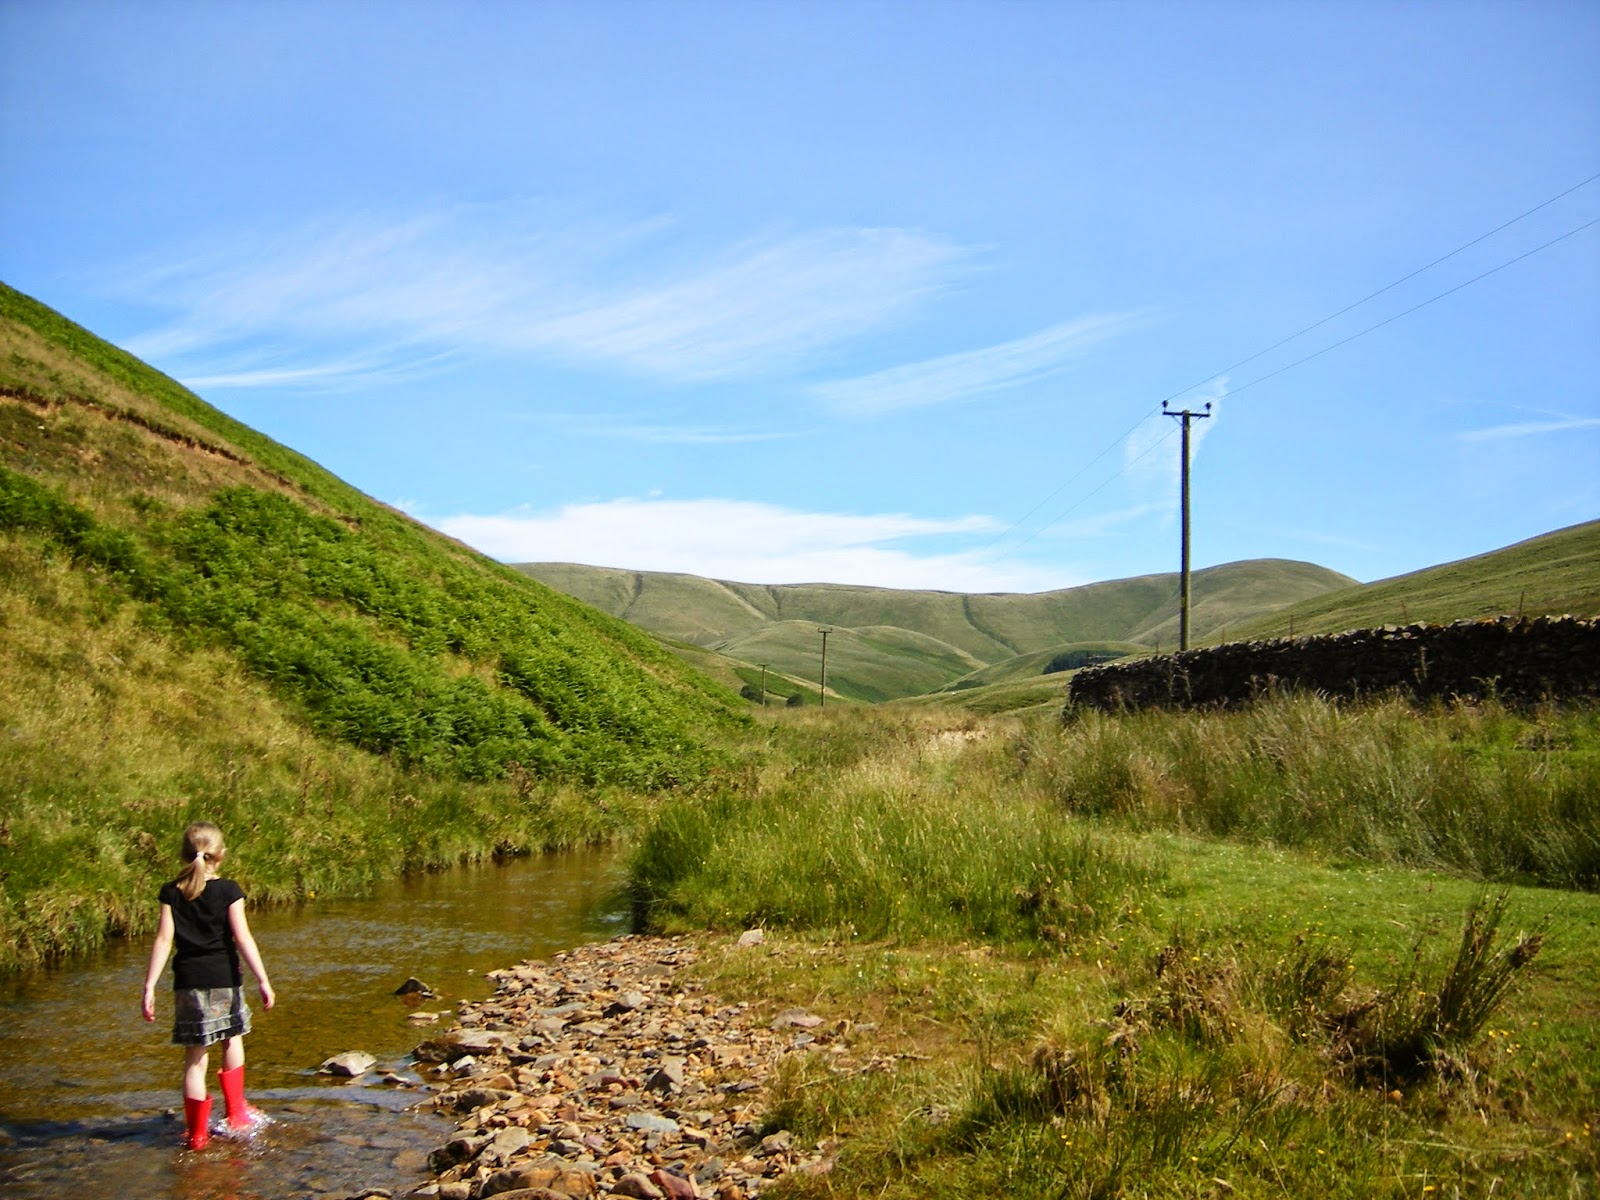 country landscape with hills and river/ stream in summer in scotland